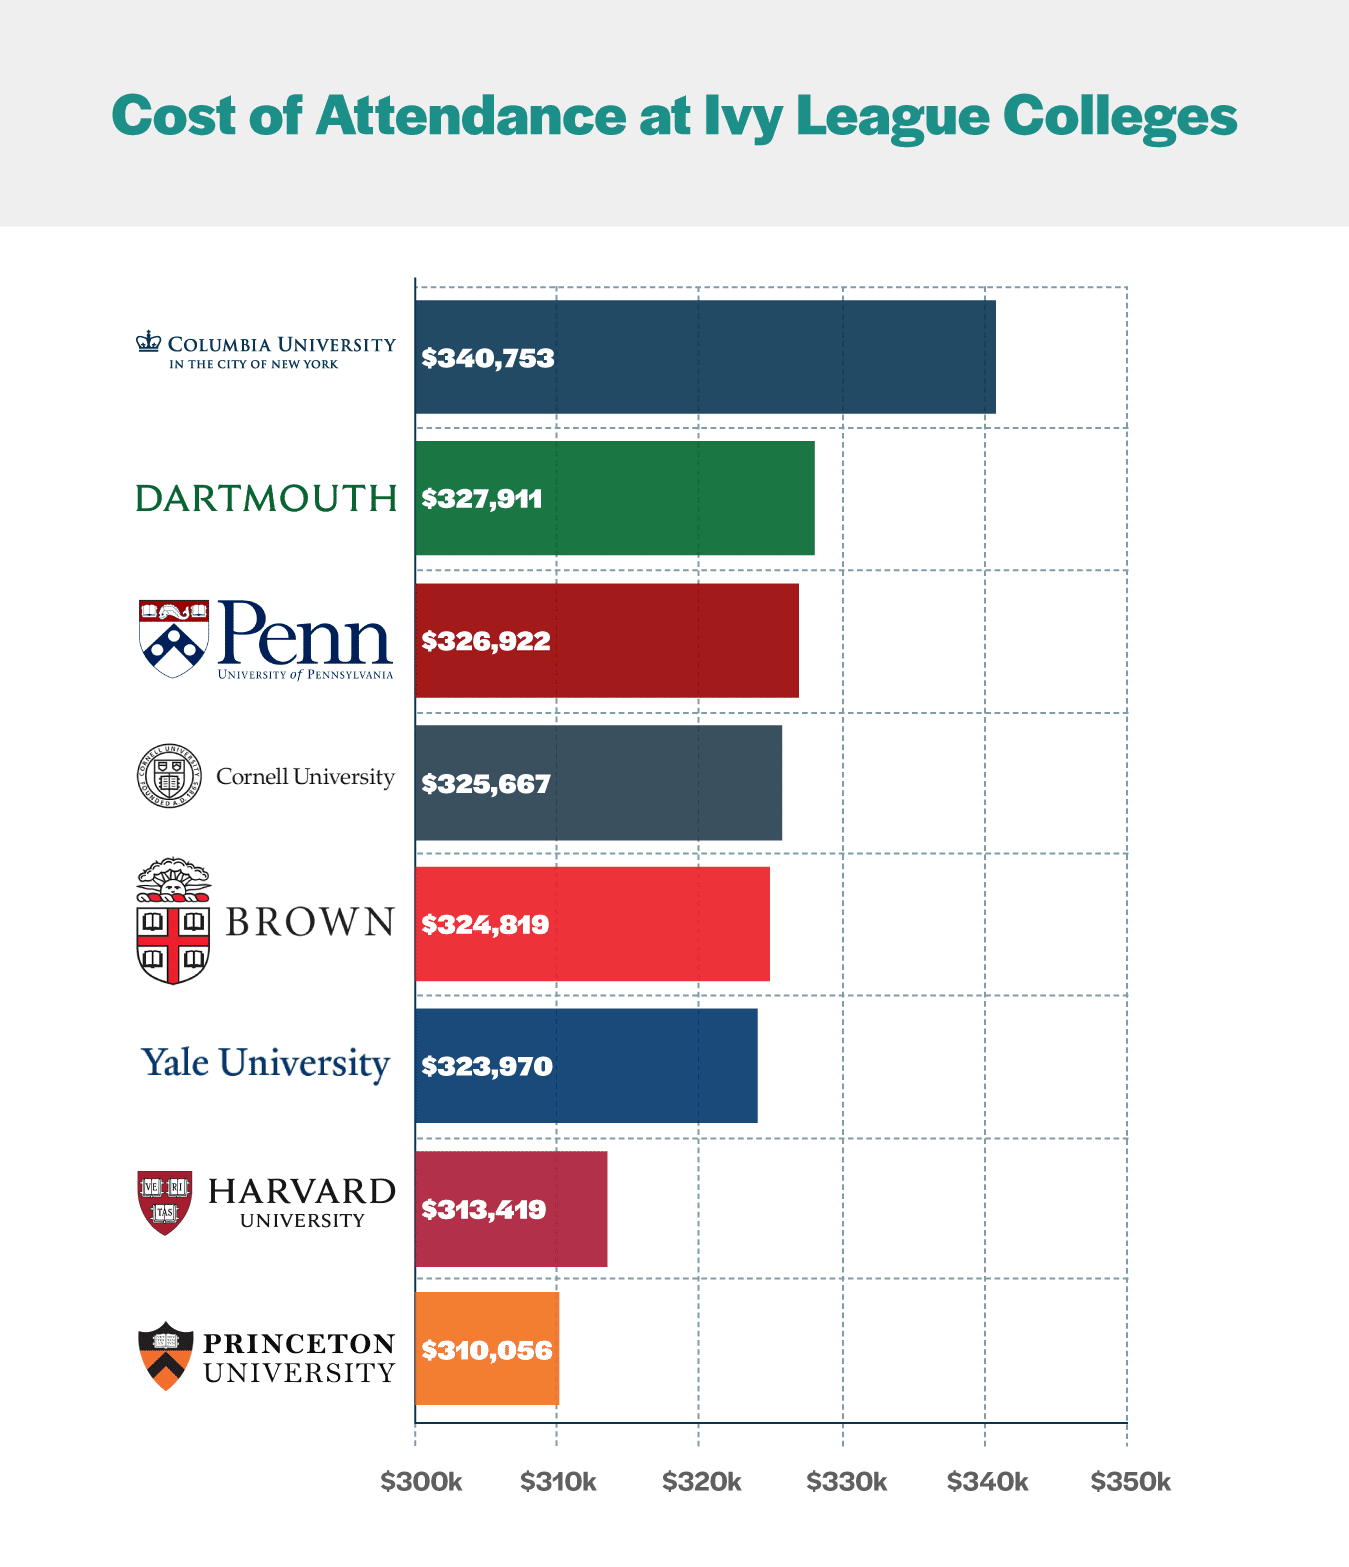 Cost Attendance Ivy League Colleges